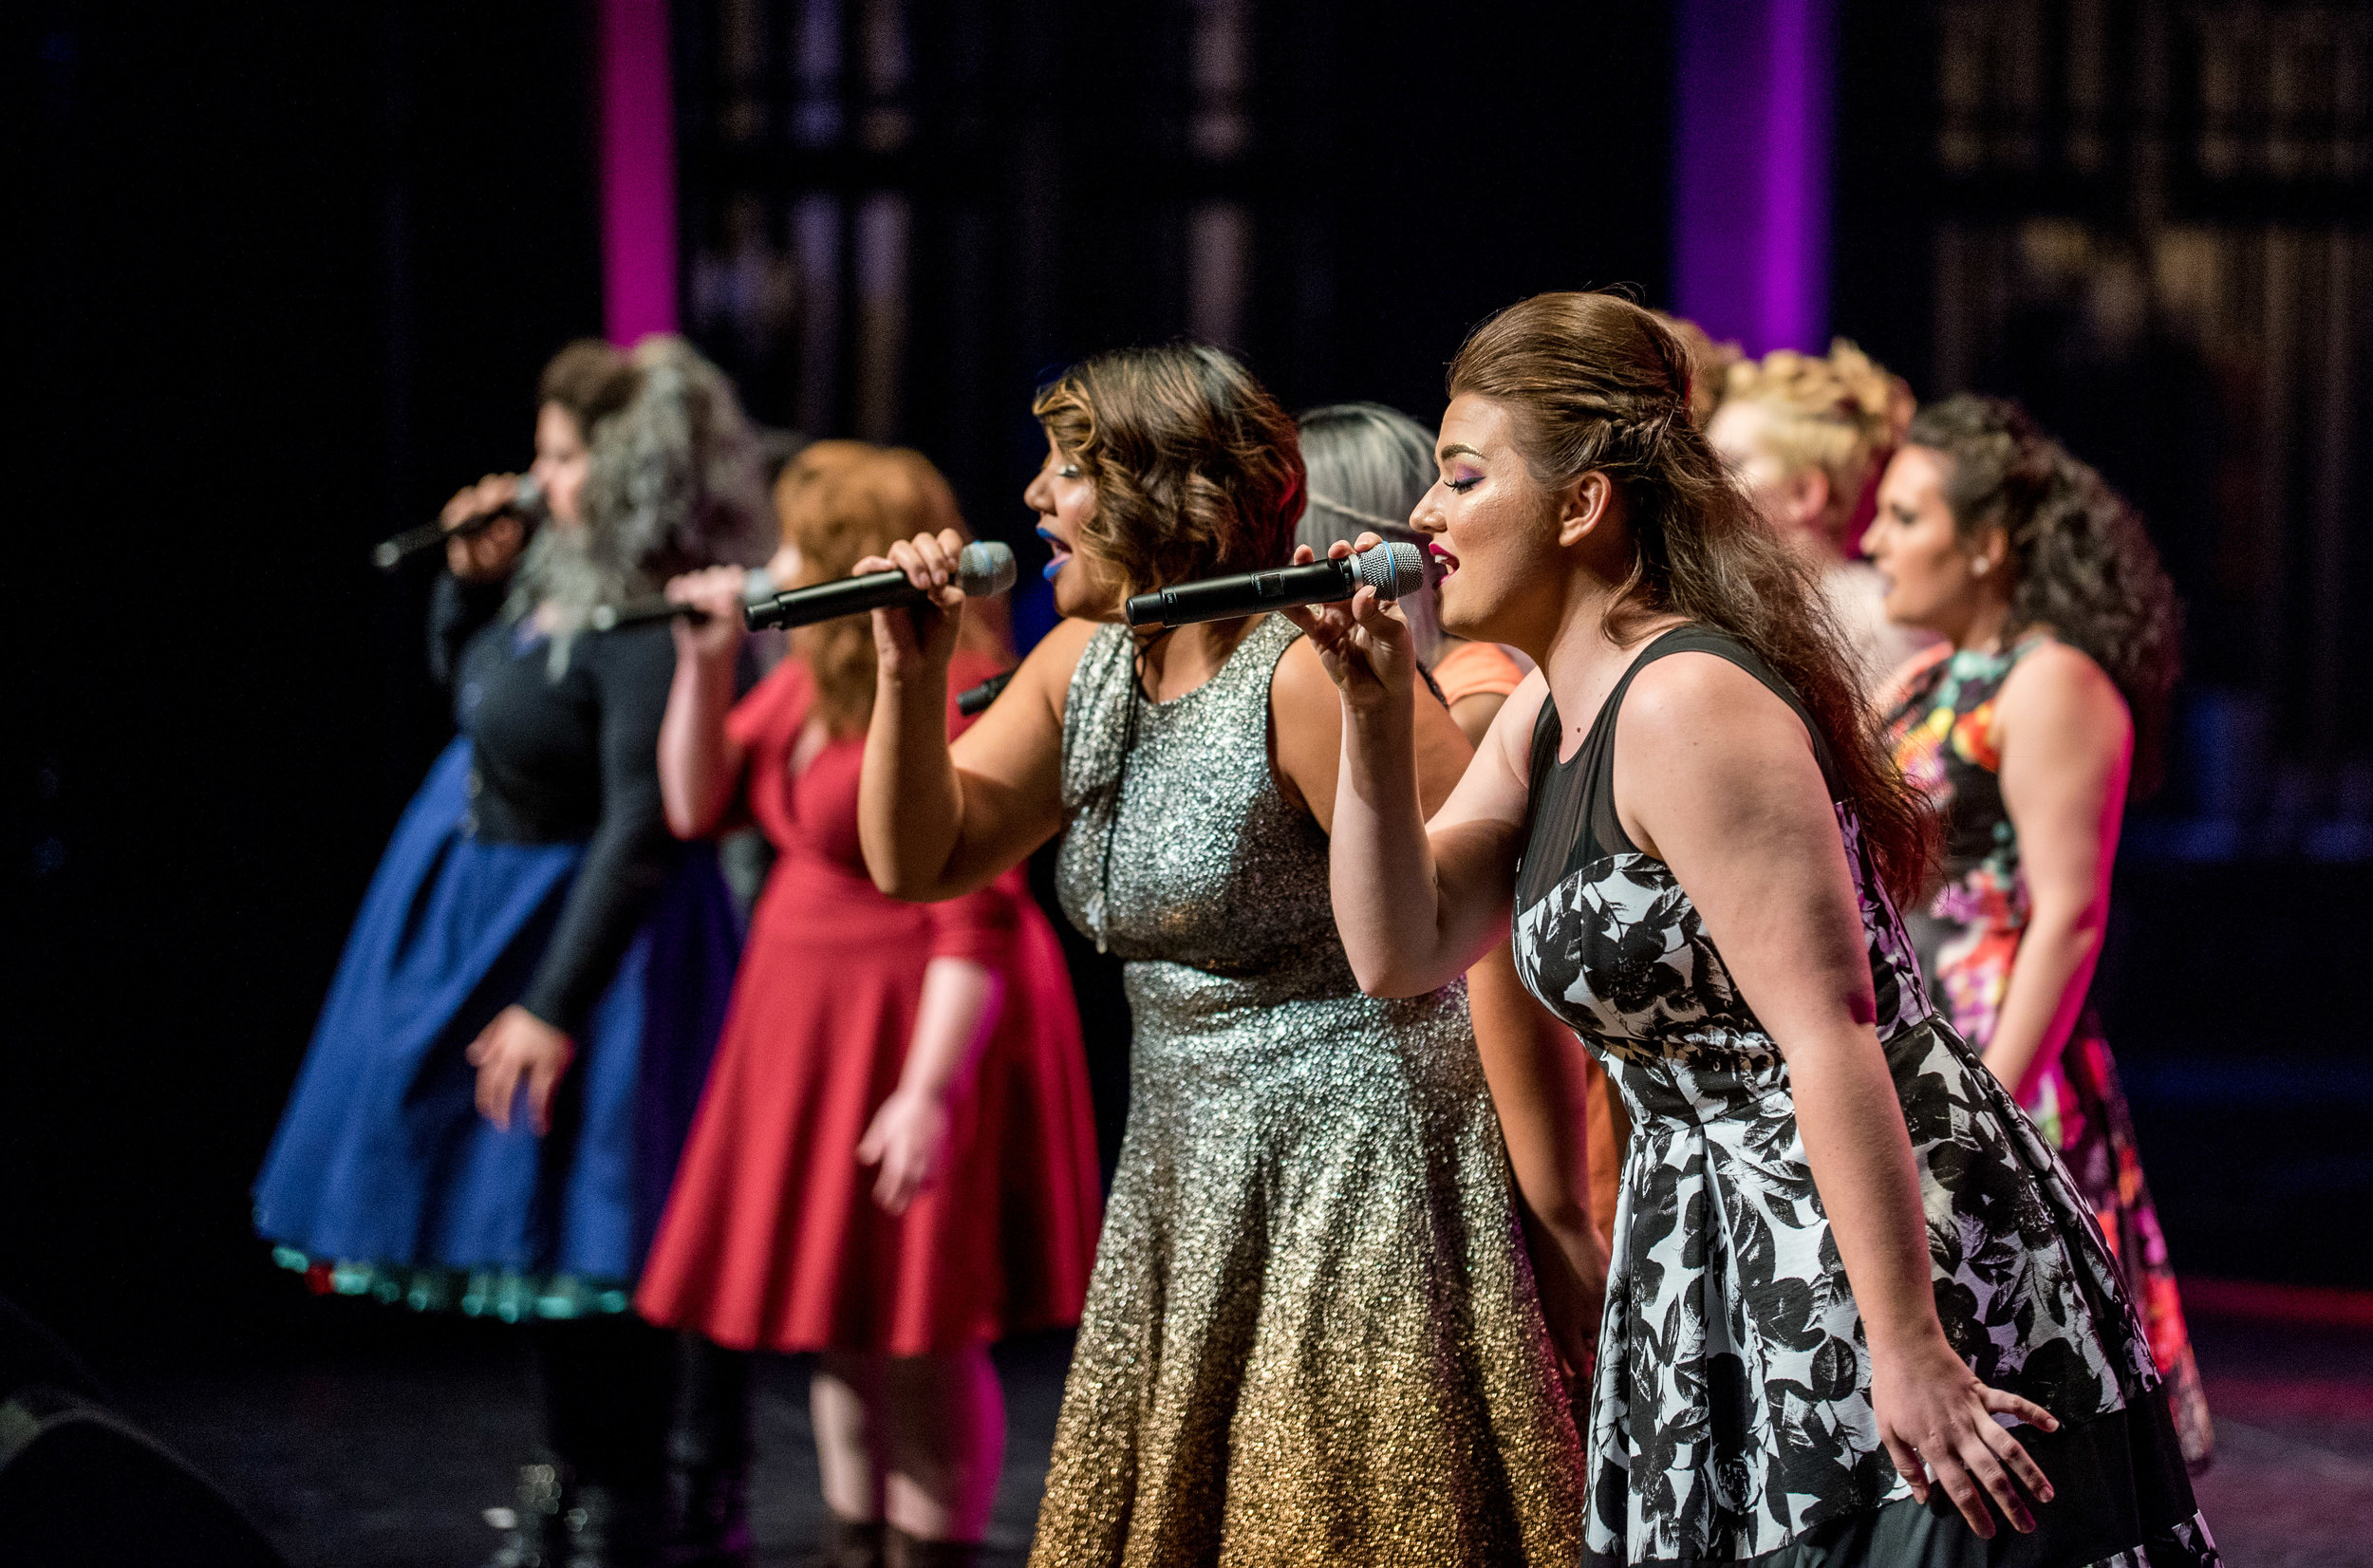 Aca-Amazing - … This is not your grandmother's a cappella. This is current music and old music made current by extreme vocal range and control, tight harmonies, sick beats and vocal percussion… Whether you want to compete, learn or listen, VoiceJam has something for everyone.